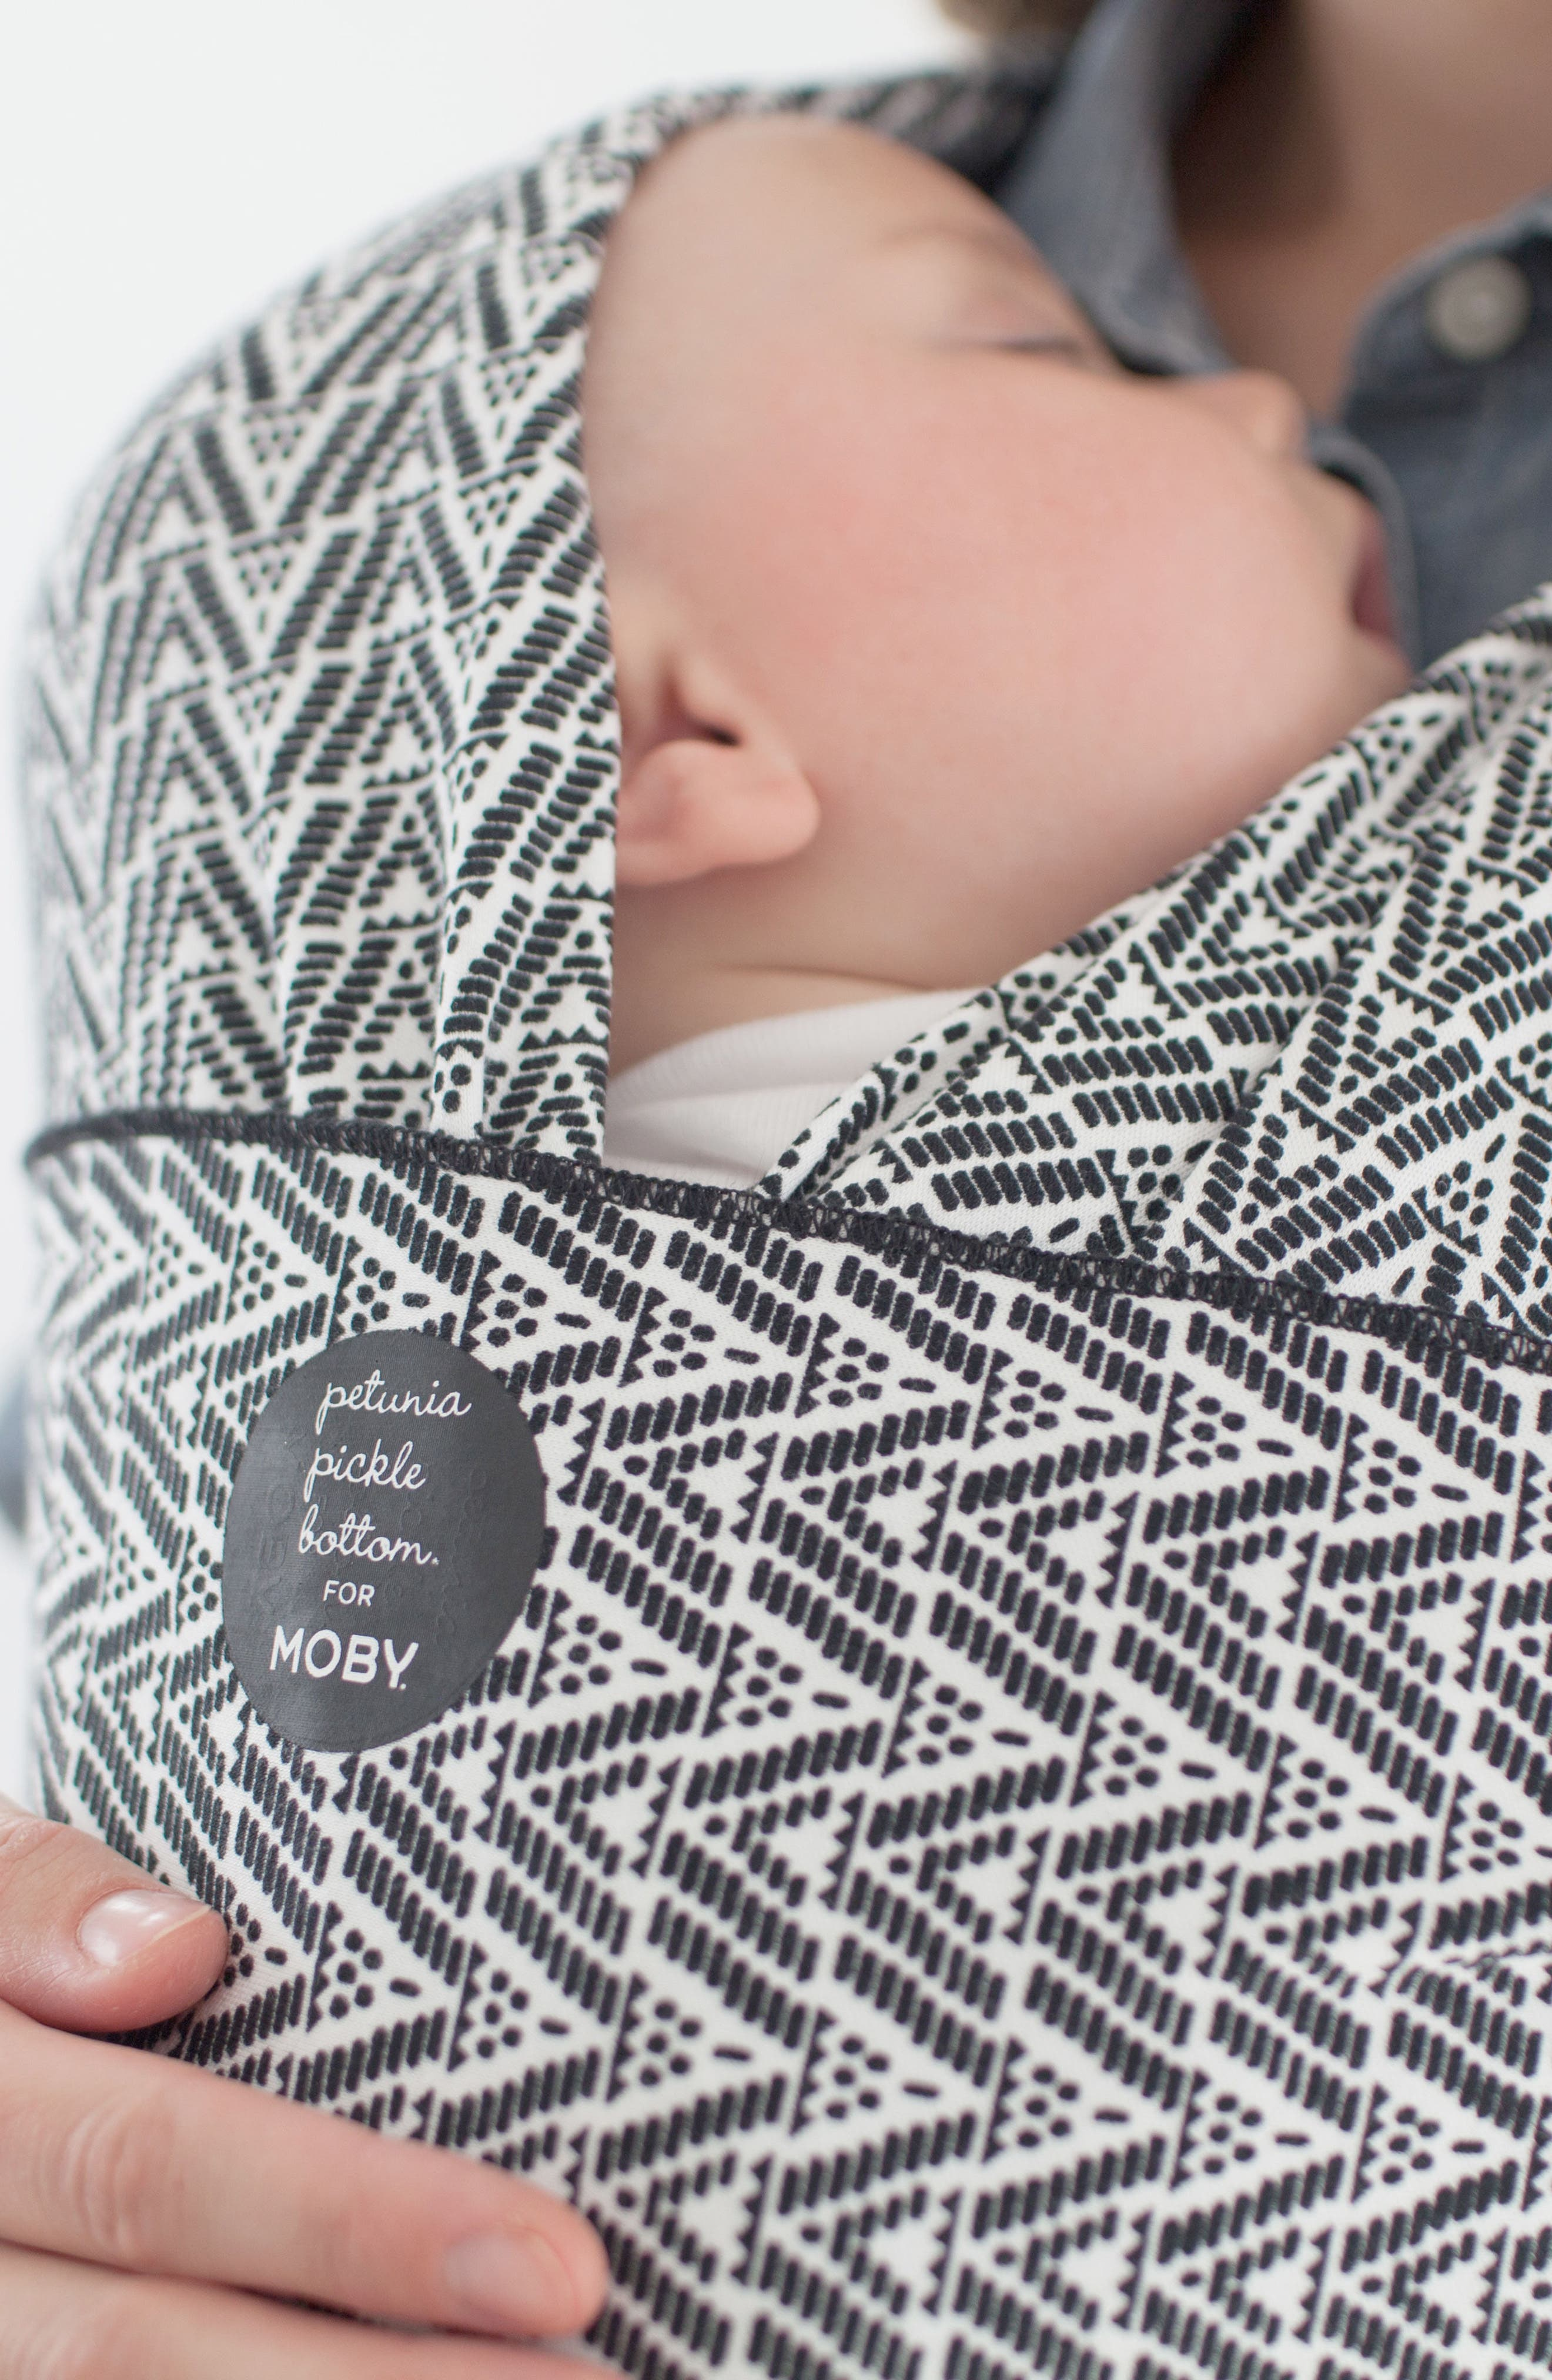 Moby Wrap x Petunia Pickle Bottom Baby Carrier